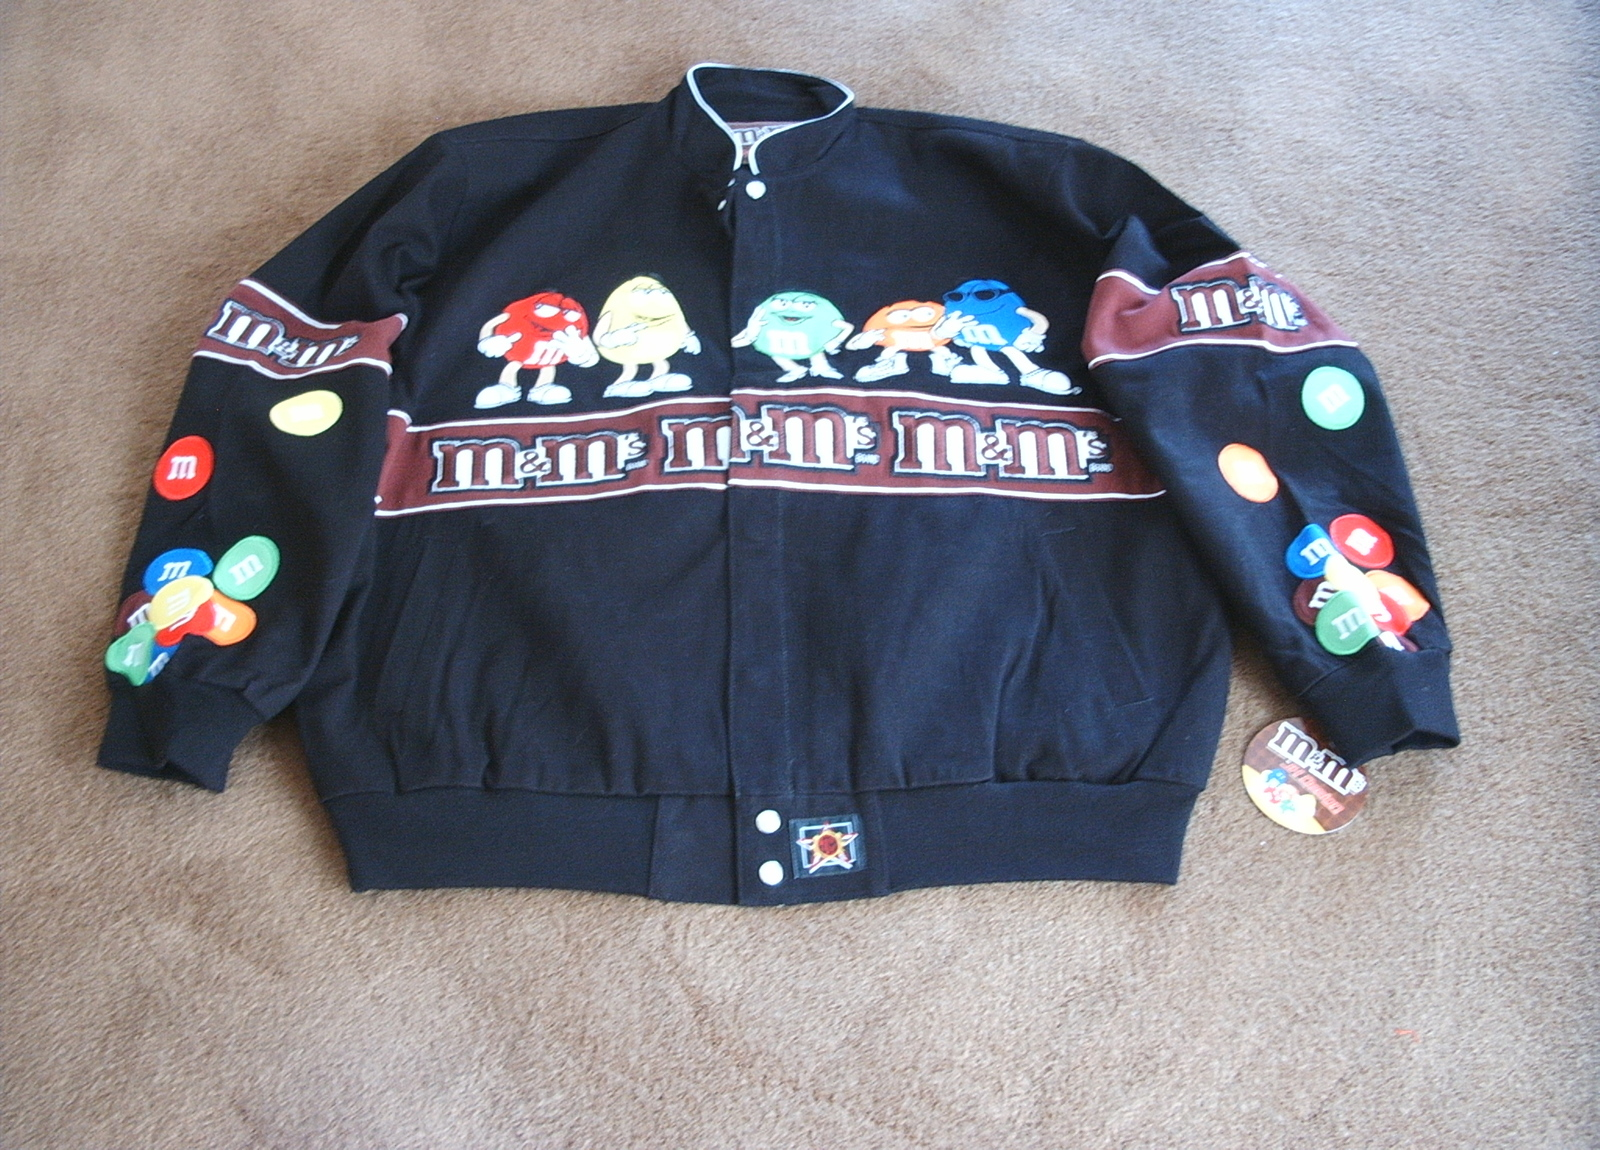 NWT/JH DESIGN/JEFF HAMILTON/M & M JACKET/BLACK/2XL